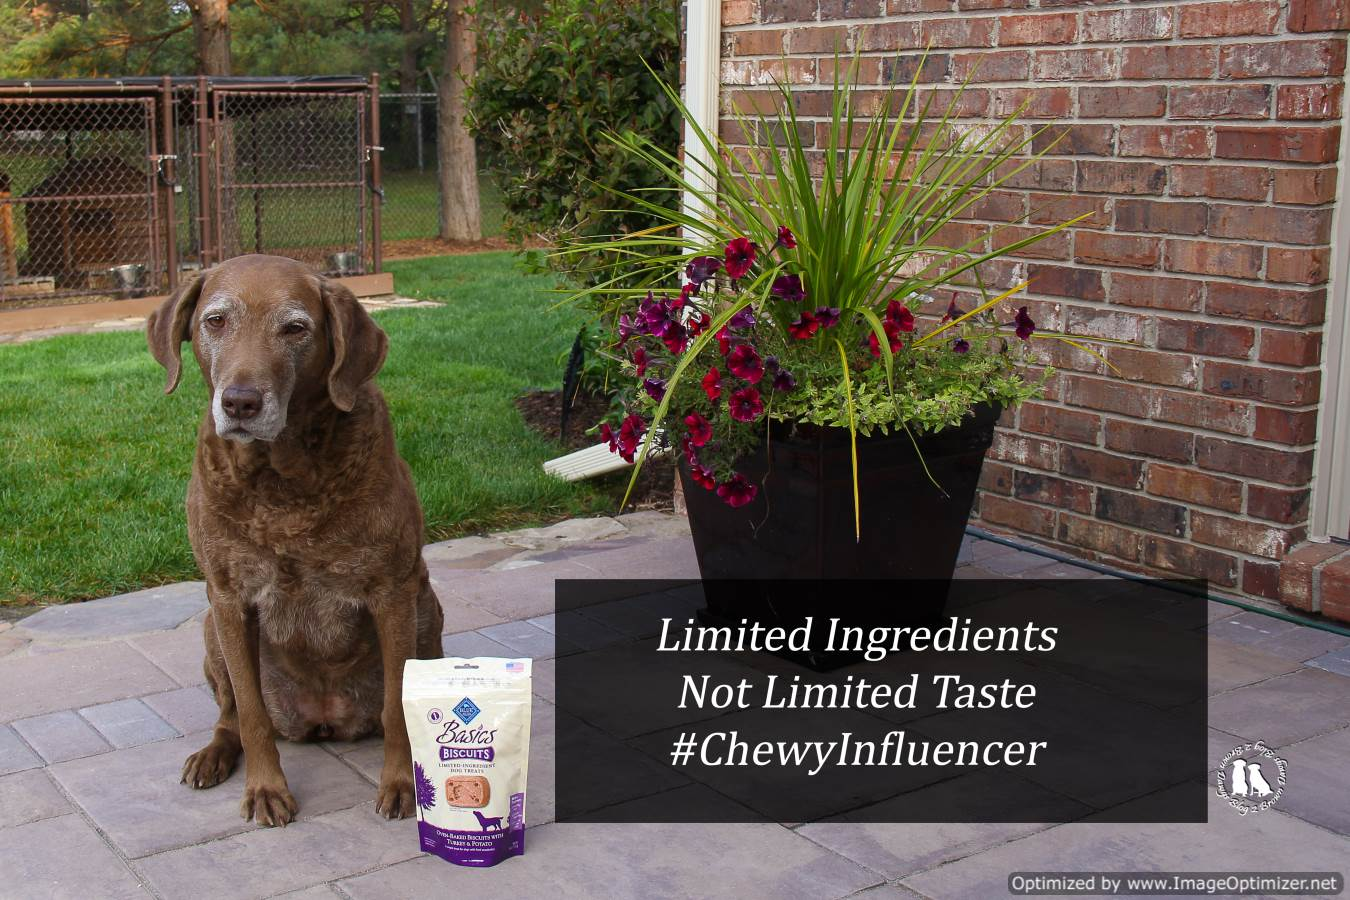 Limited Ingredients Not Limited Taste